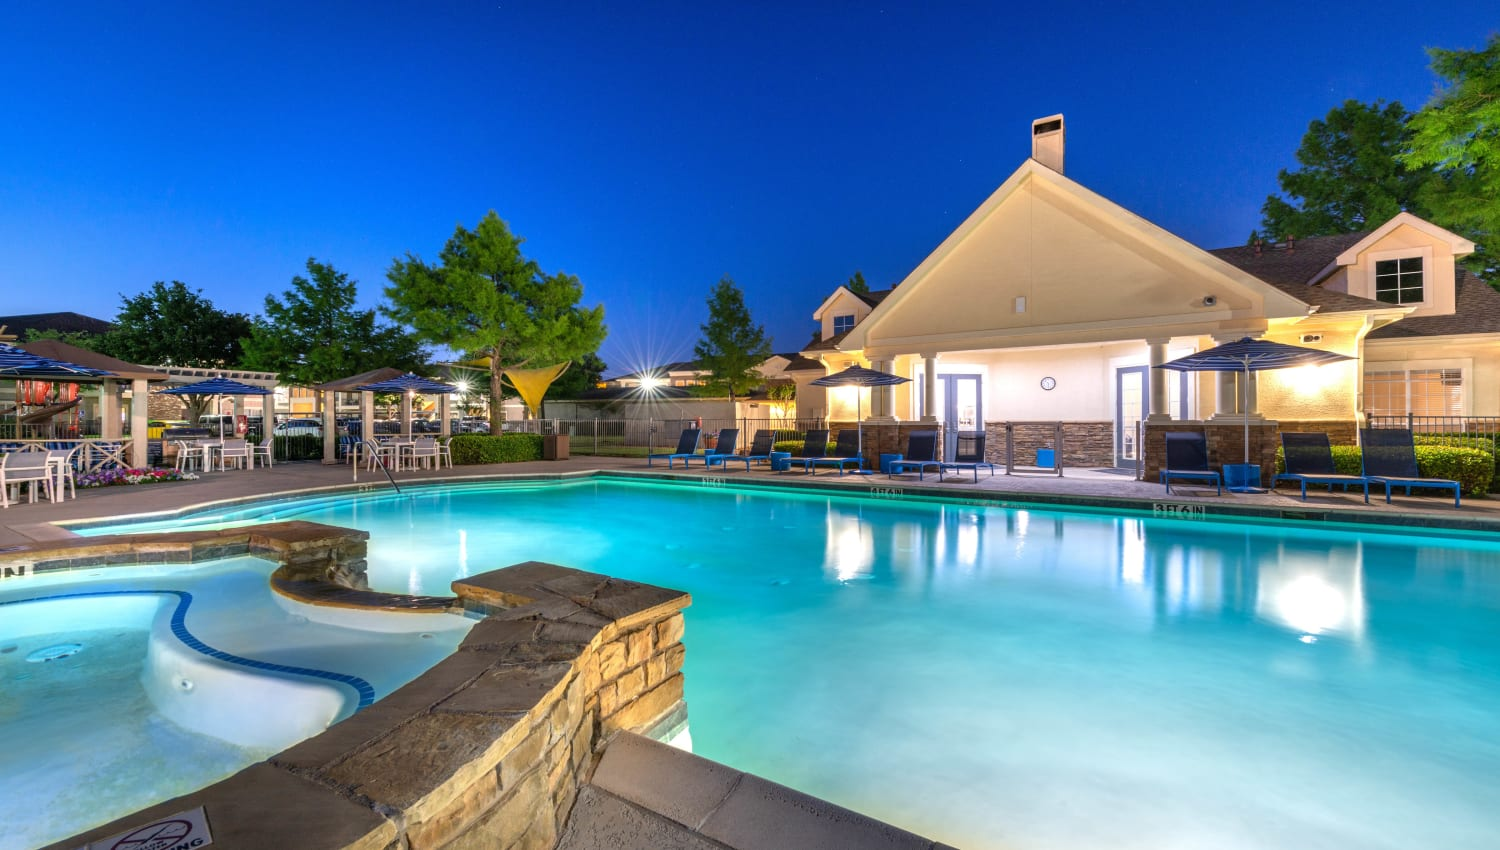 Spa and swimming pool with underwater illumination at dusk at Olympus Stone Glen in Keller, Texas